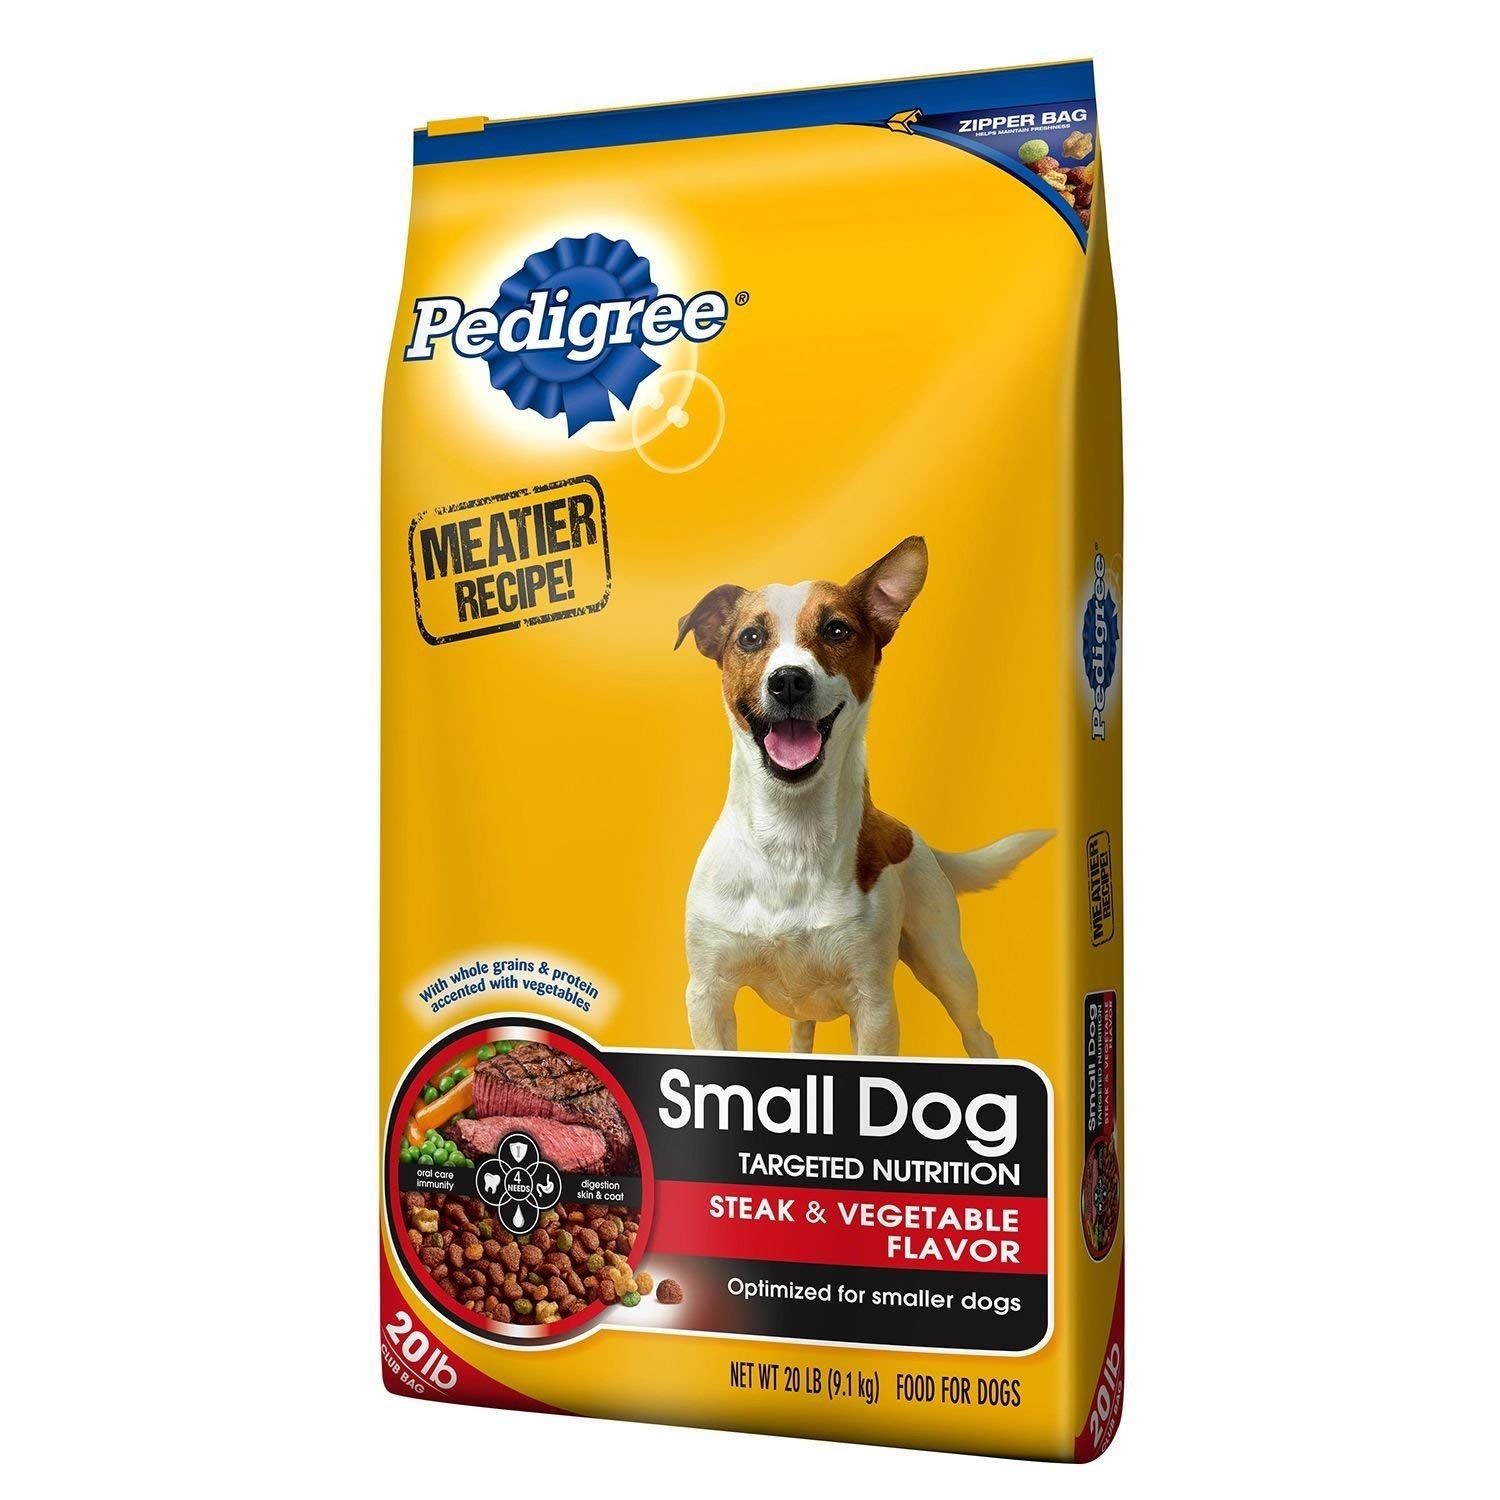 Pedigree Small Dog Targeted Nutrition Dog Food Steak And